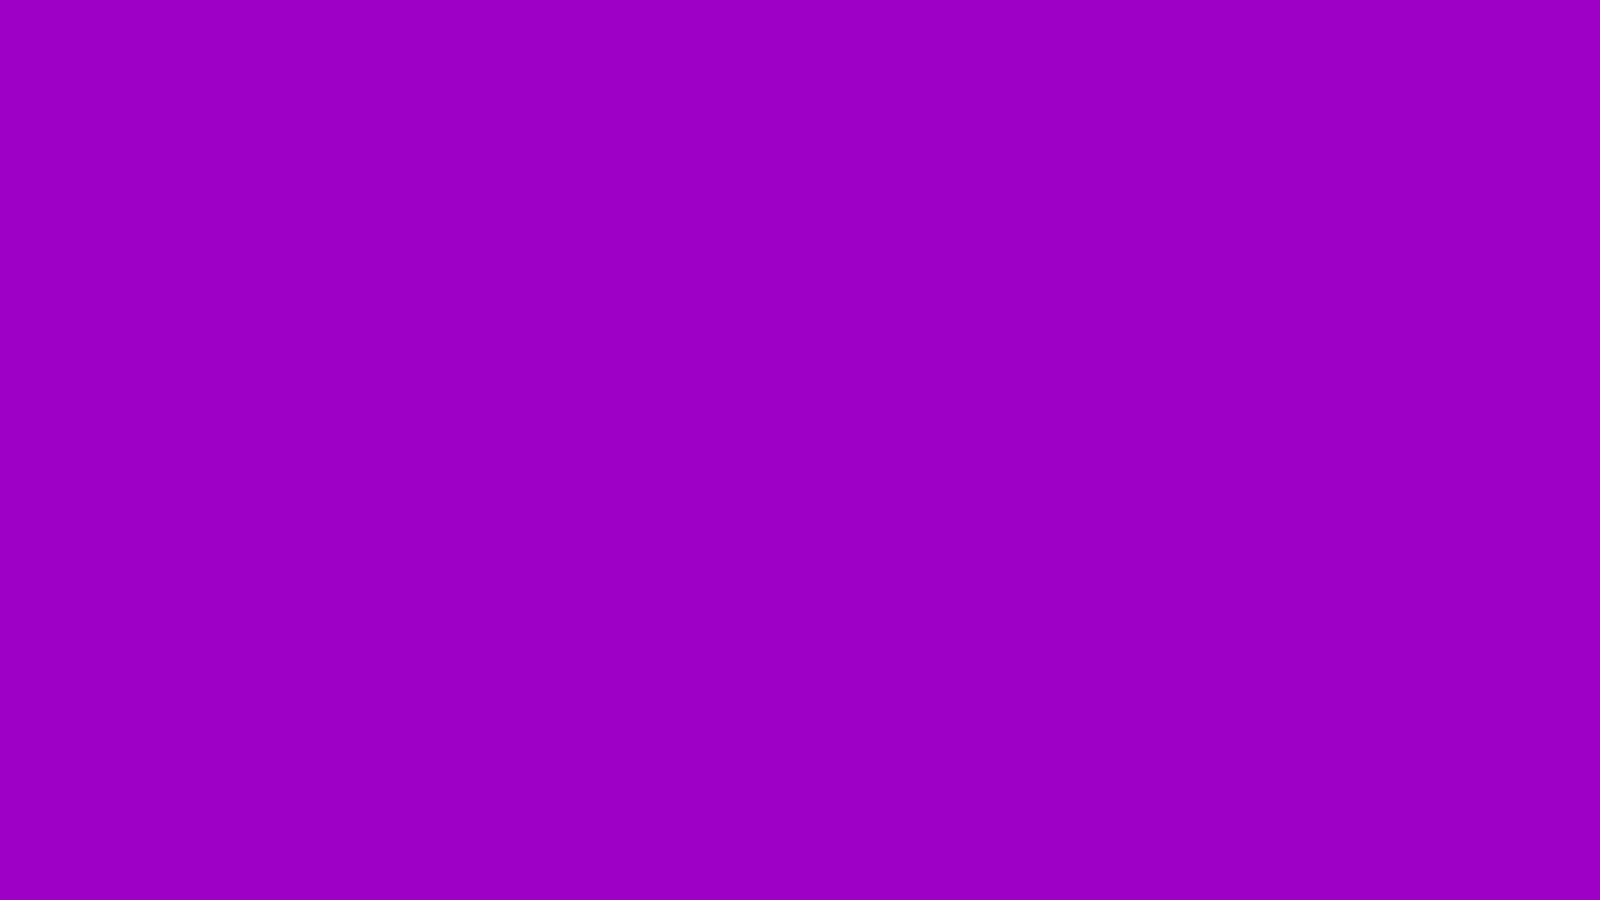 1600x900 Purple Munsell Solid Color Background